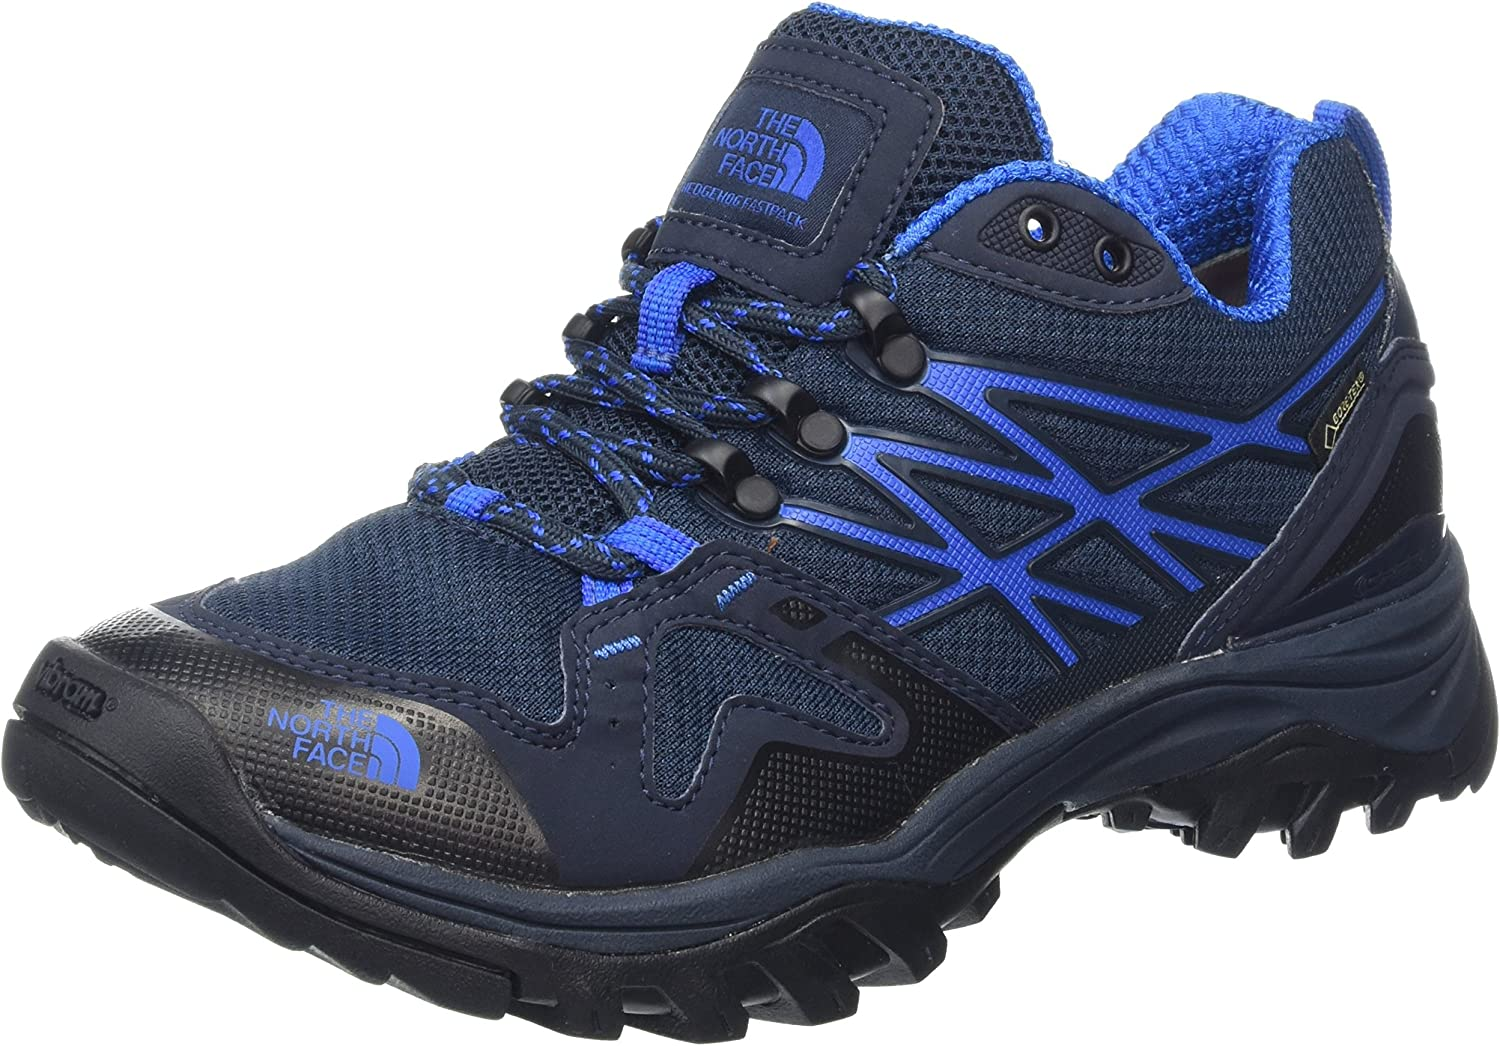 THE NORTH FACE Men's Hedgehog Fastpack Gore-tex (EU) Low Rise Hiking Boots